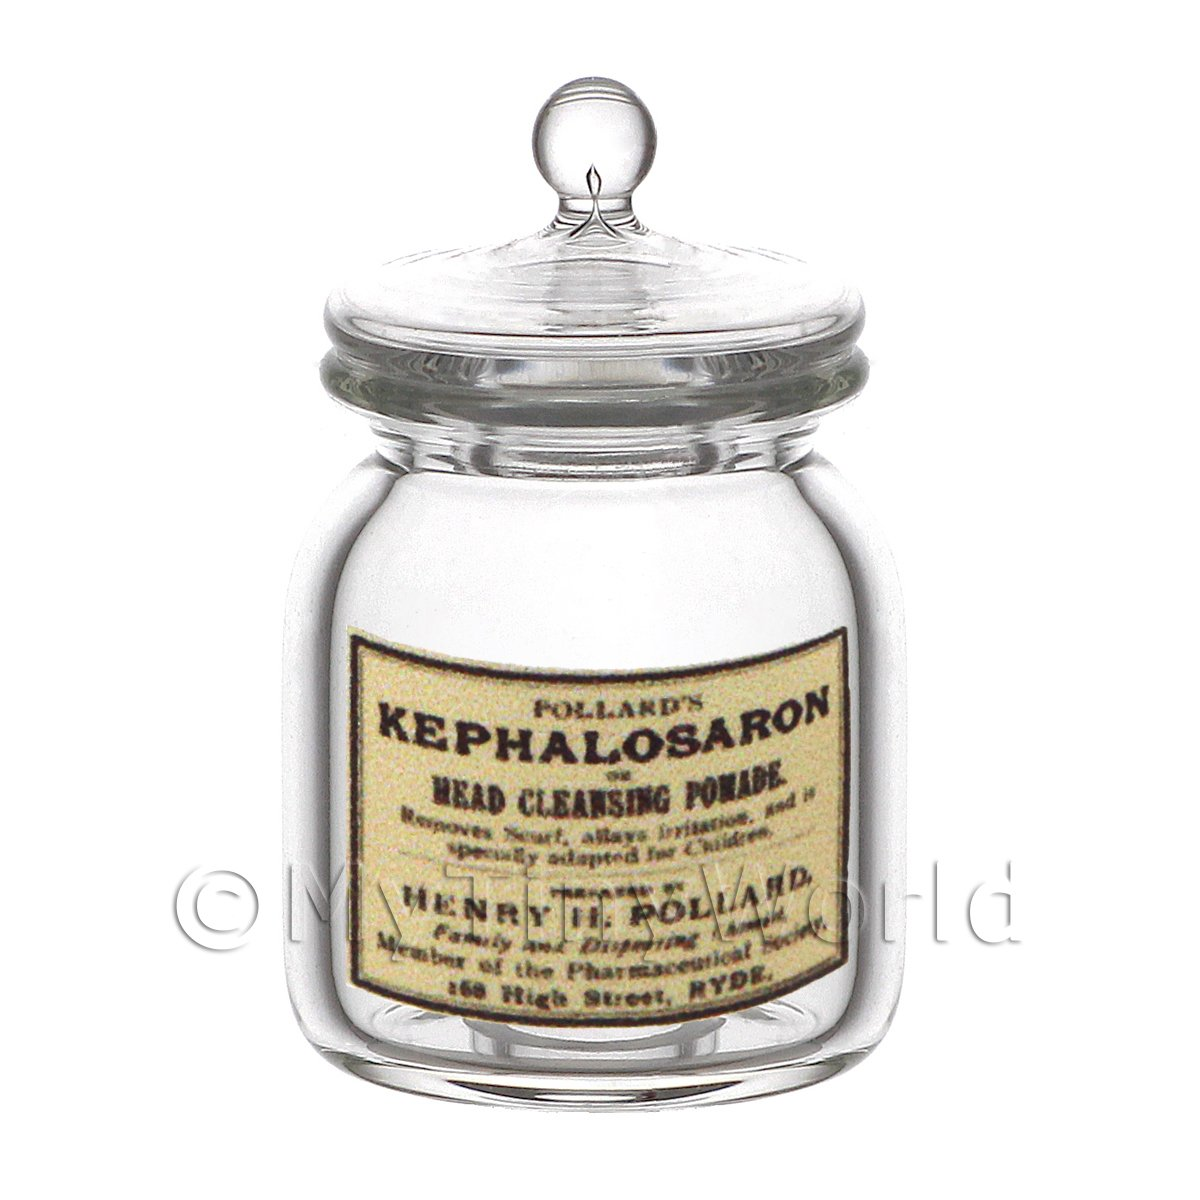 Dolls House Miniature Kephalosaron Glass Apothecary Storage Jar